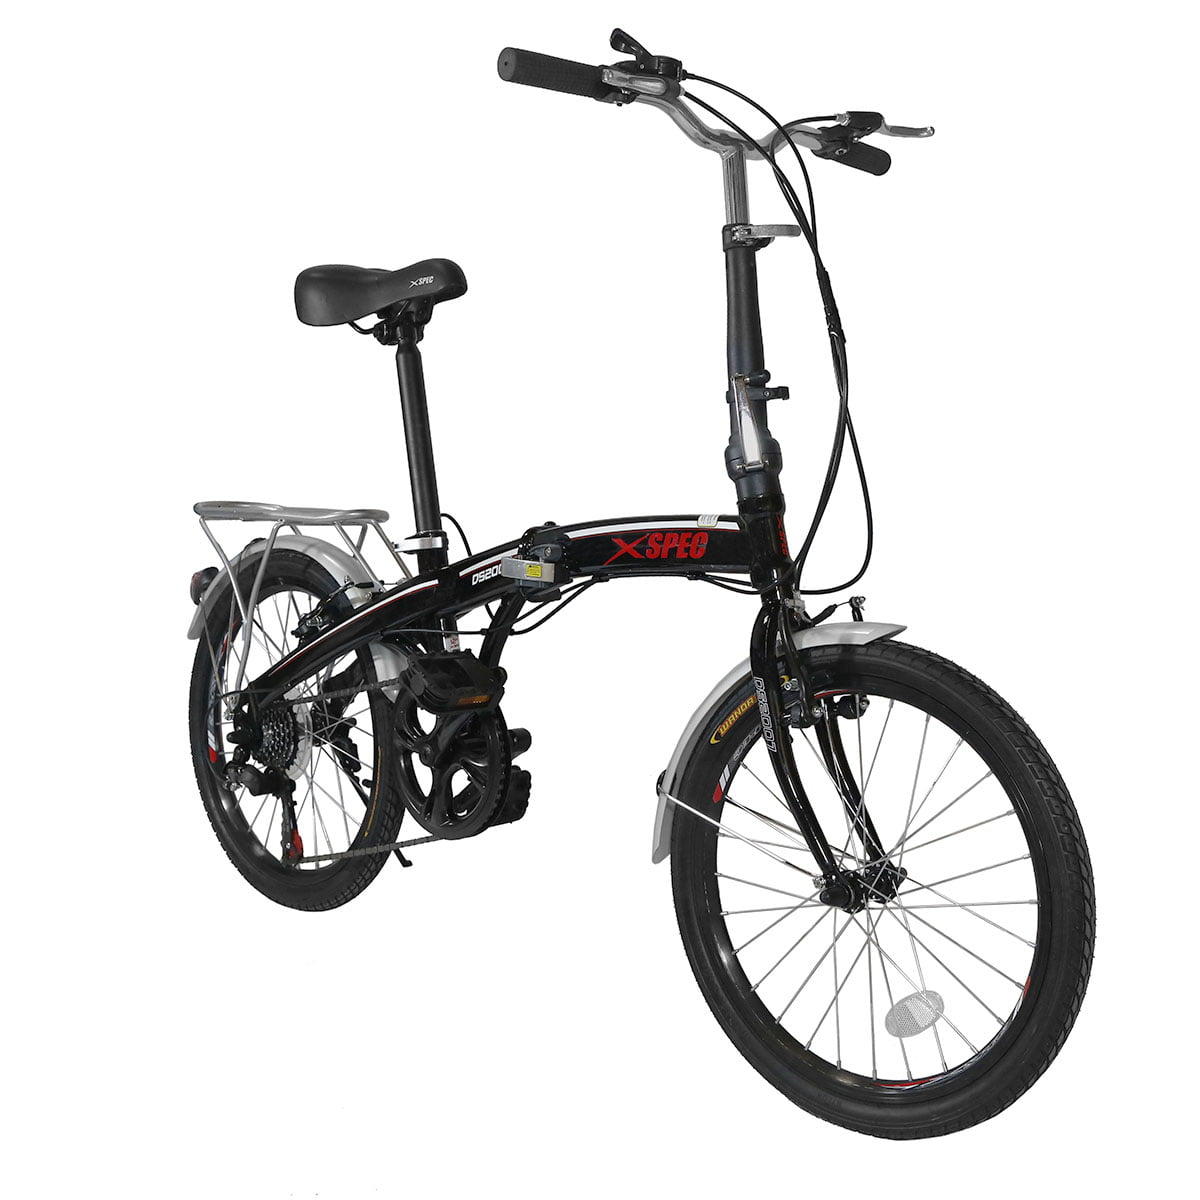 "Click here to buy Xspec 20"" 7 Speed City Folding Compact Bike Bicycle Urban Commuter Shimano, Black by Xspec."